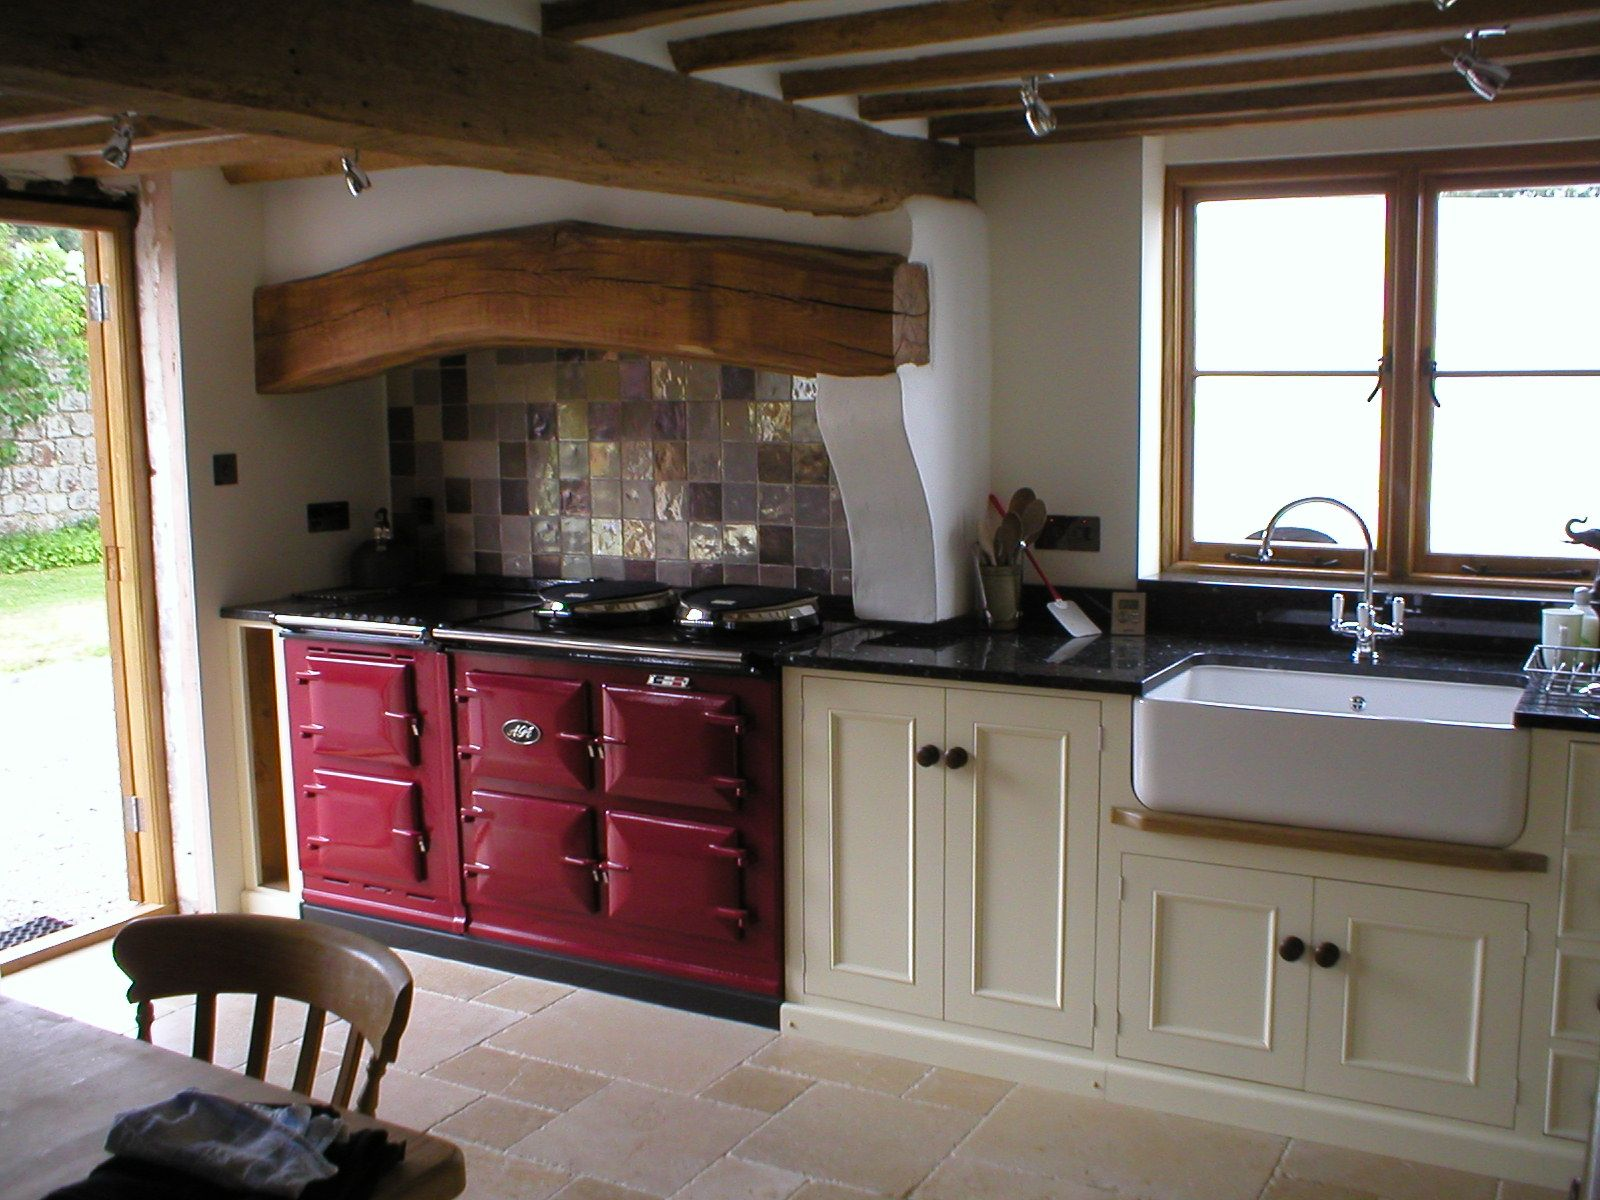 Farmhouse kitchen colors related keywords amp suggestions farmhouse - The Aga Cooker Anglophile Friday Love The Beam Above The Cooker Small Country Kitchens Farmhouse